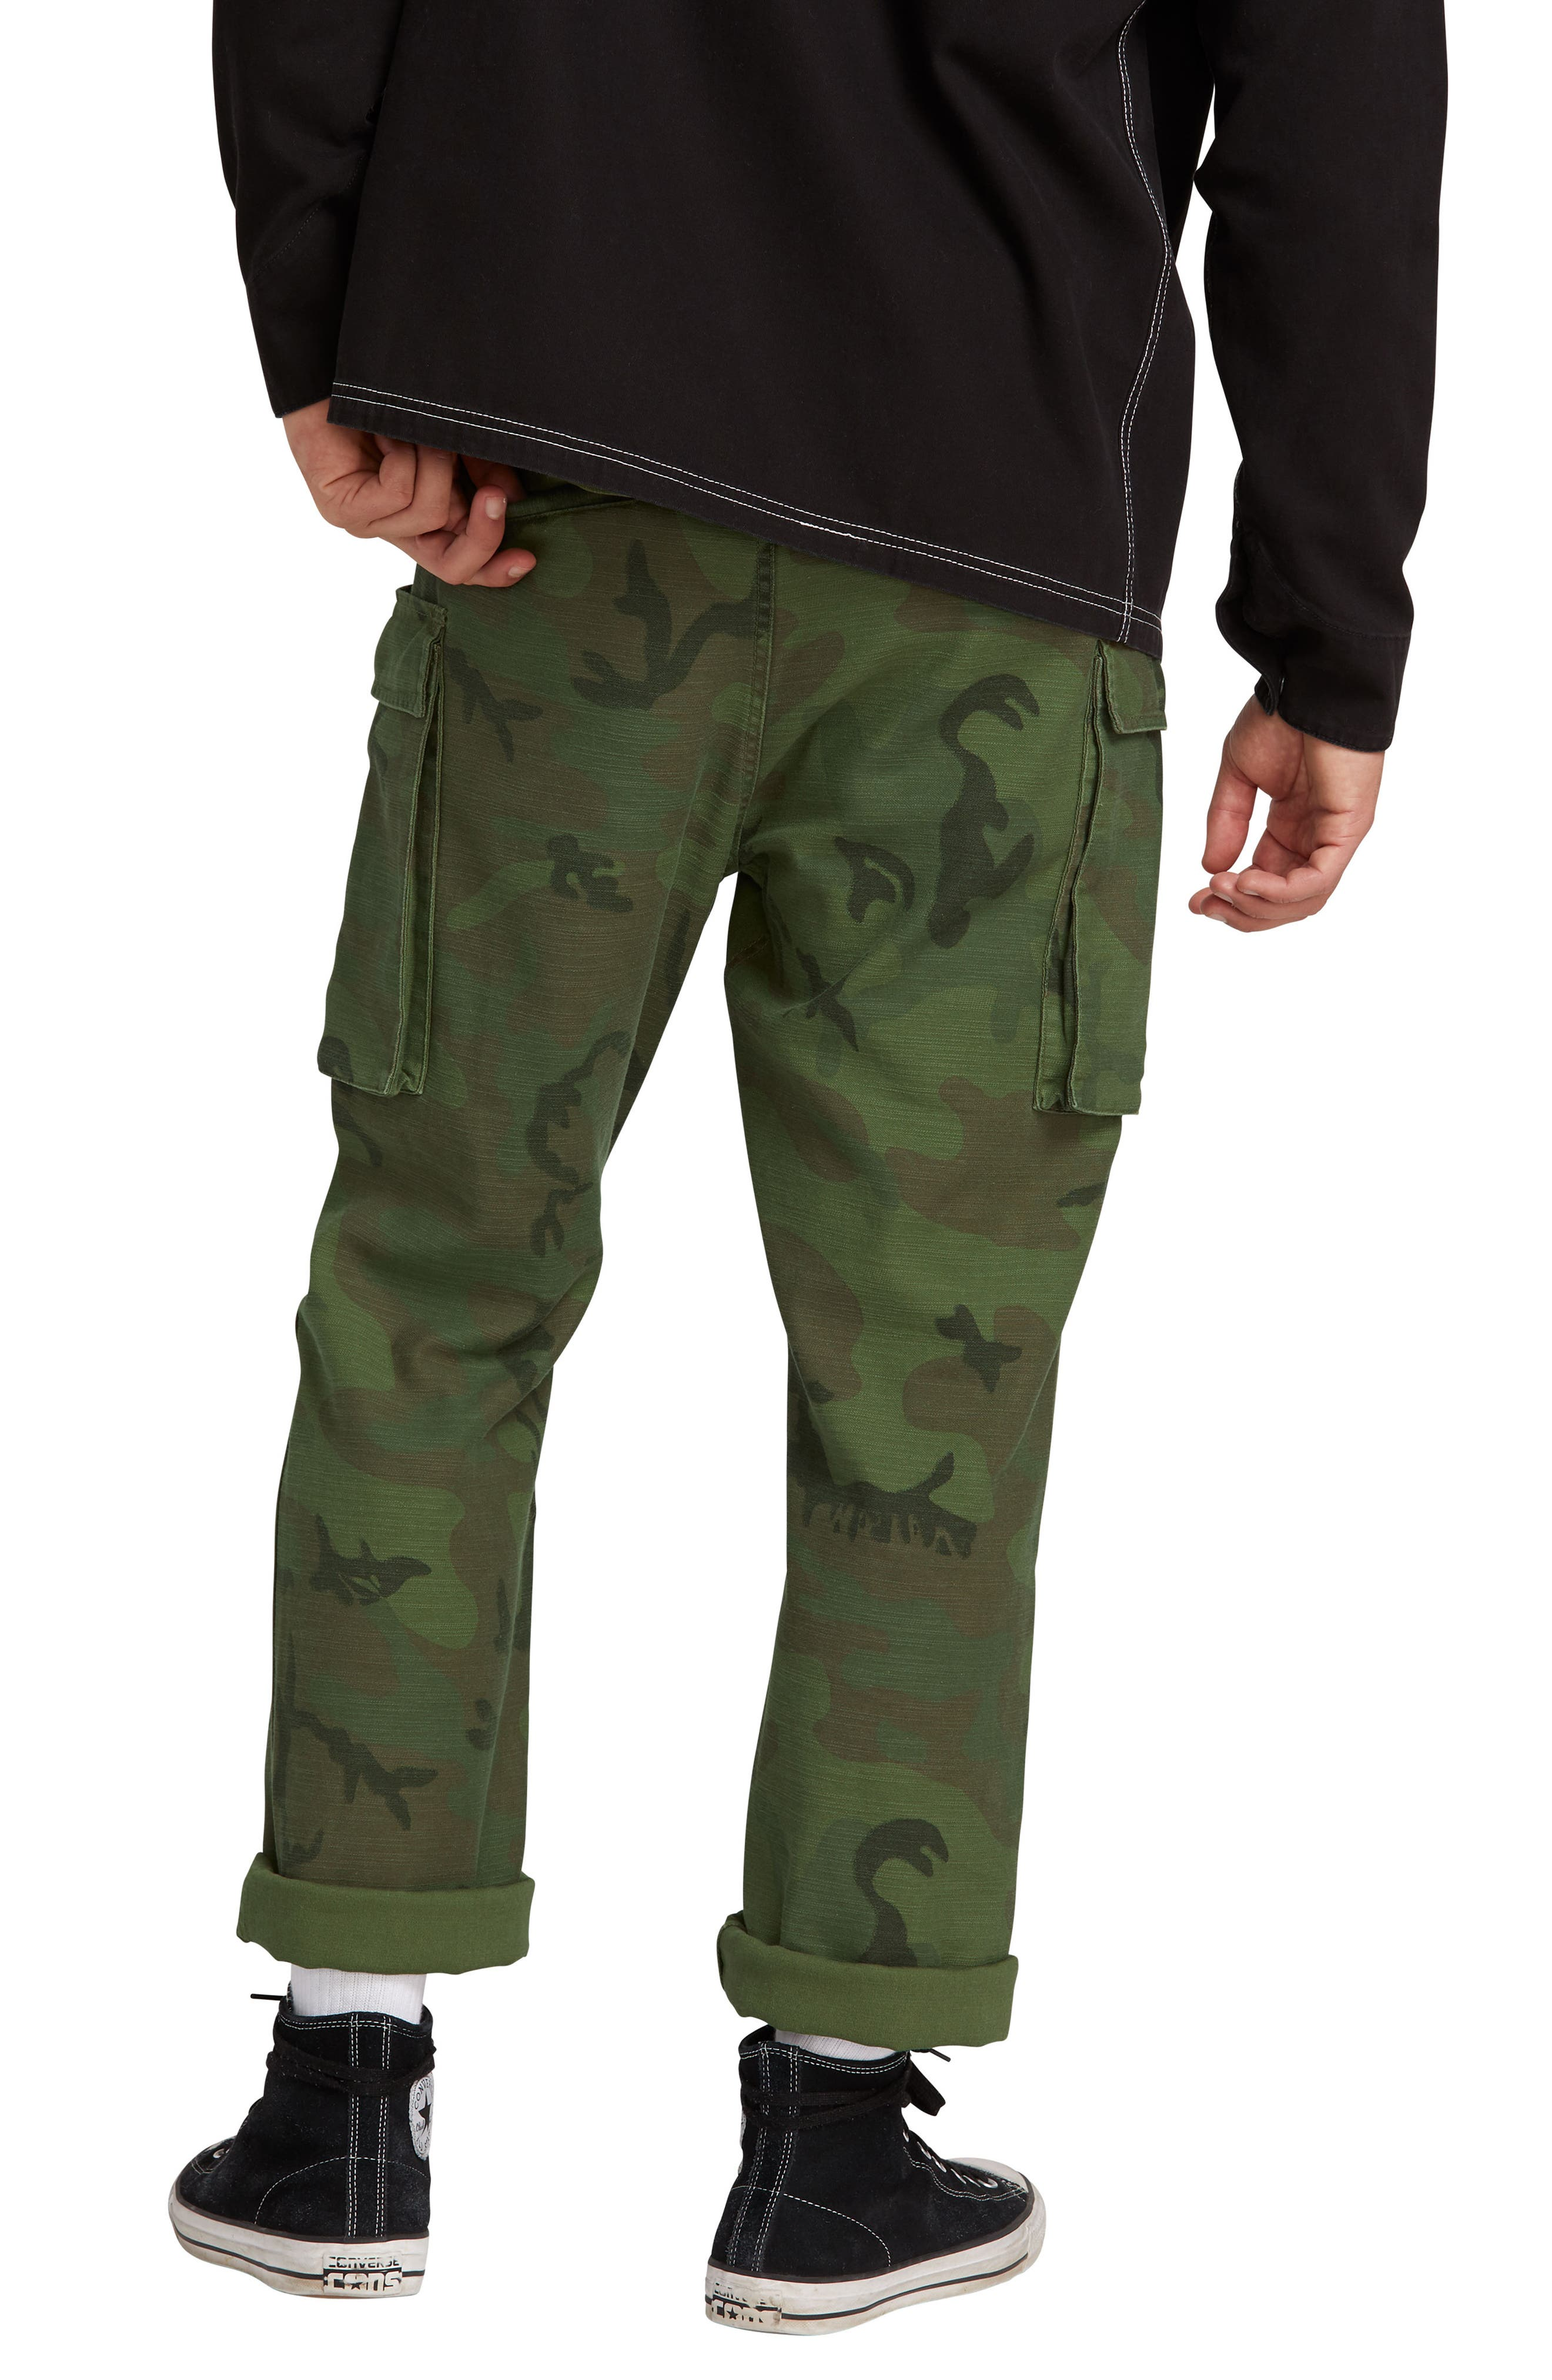 Gritter Cargo Pants,                             Alternate thumbnail 2, color,                             CAMOUFLAGE